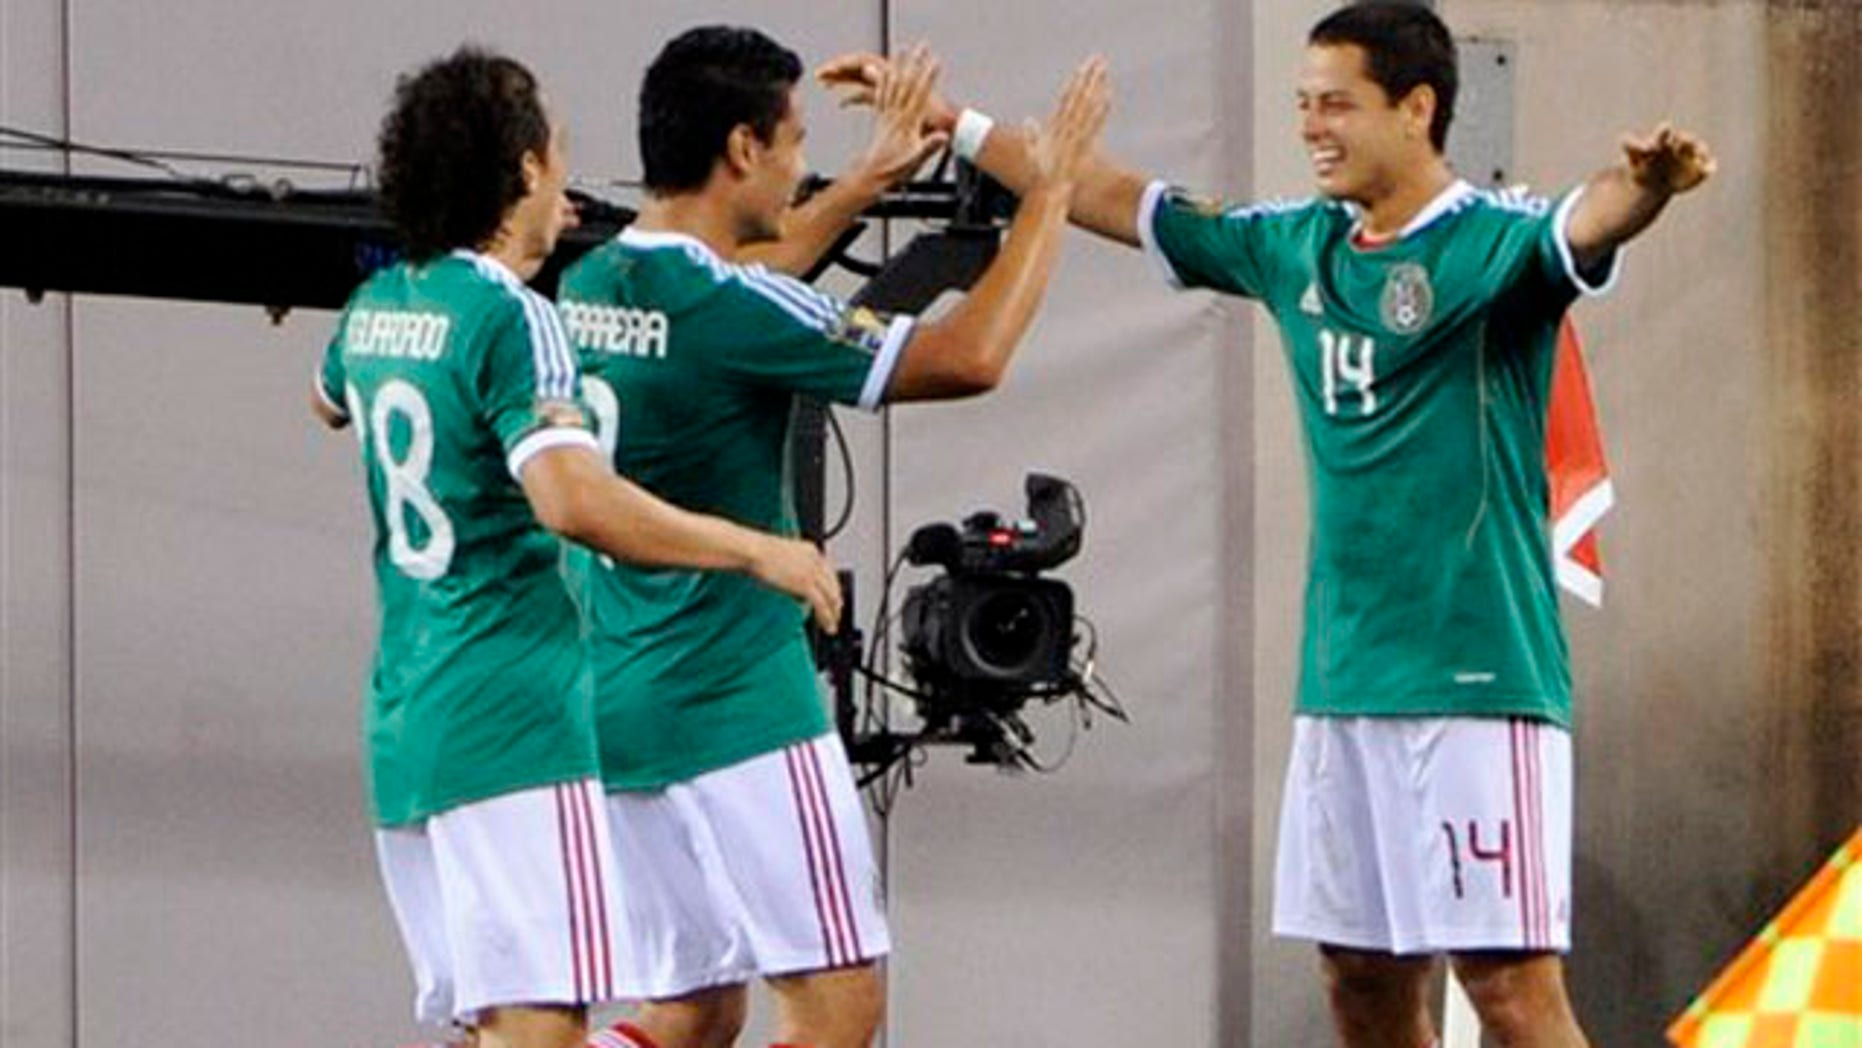 Mexico's Javier Hernandez, right, celebrates his goal with teammates Pablo Barrera, center, and Andres Guardado, left, during the second half of a CONCACAF Gold Cup quarterfinal soccer match against Guatemala, Saturday, June 18, 2011, at New Meadowlands Stadium in East Rutherford, N.J. Mexico won 2-1.